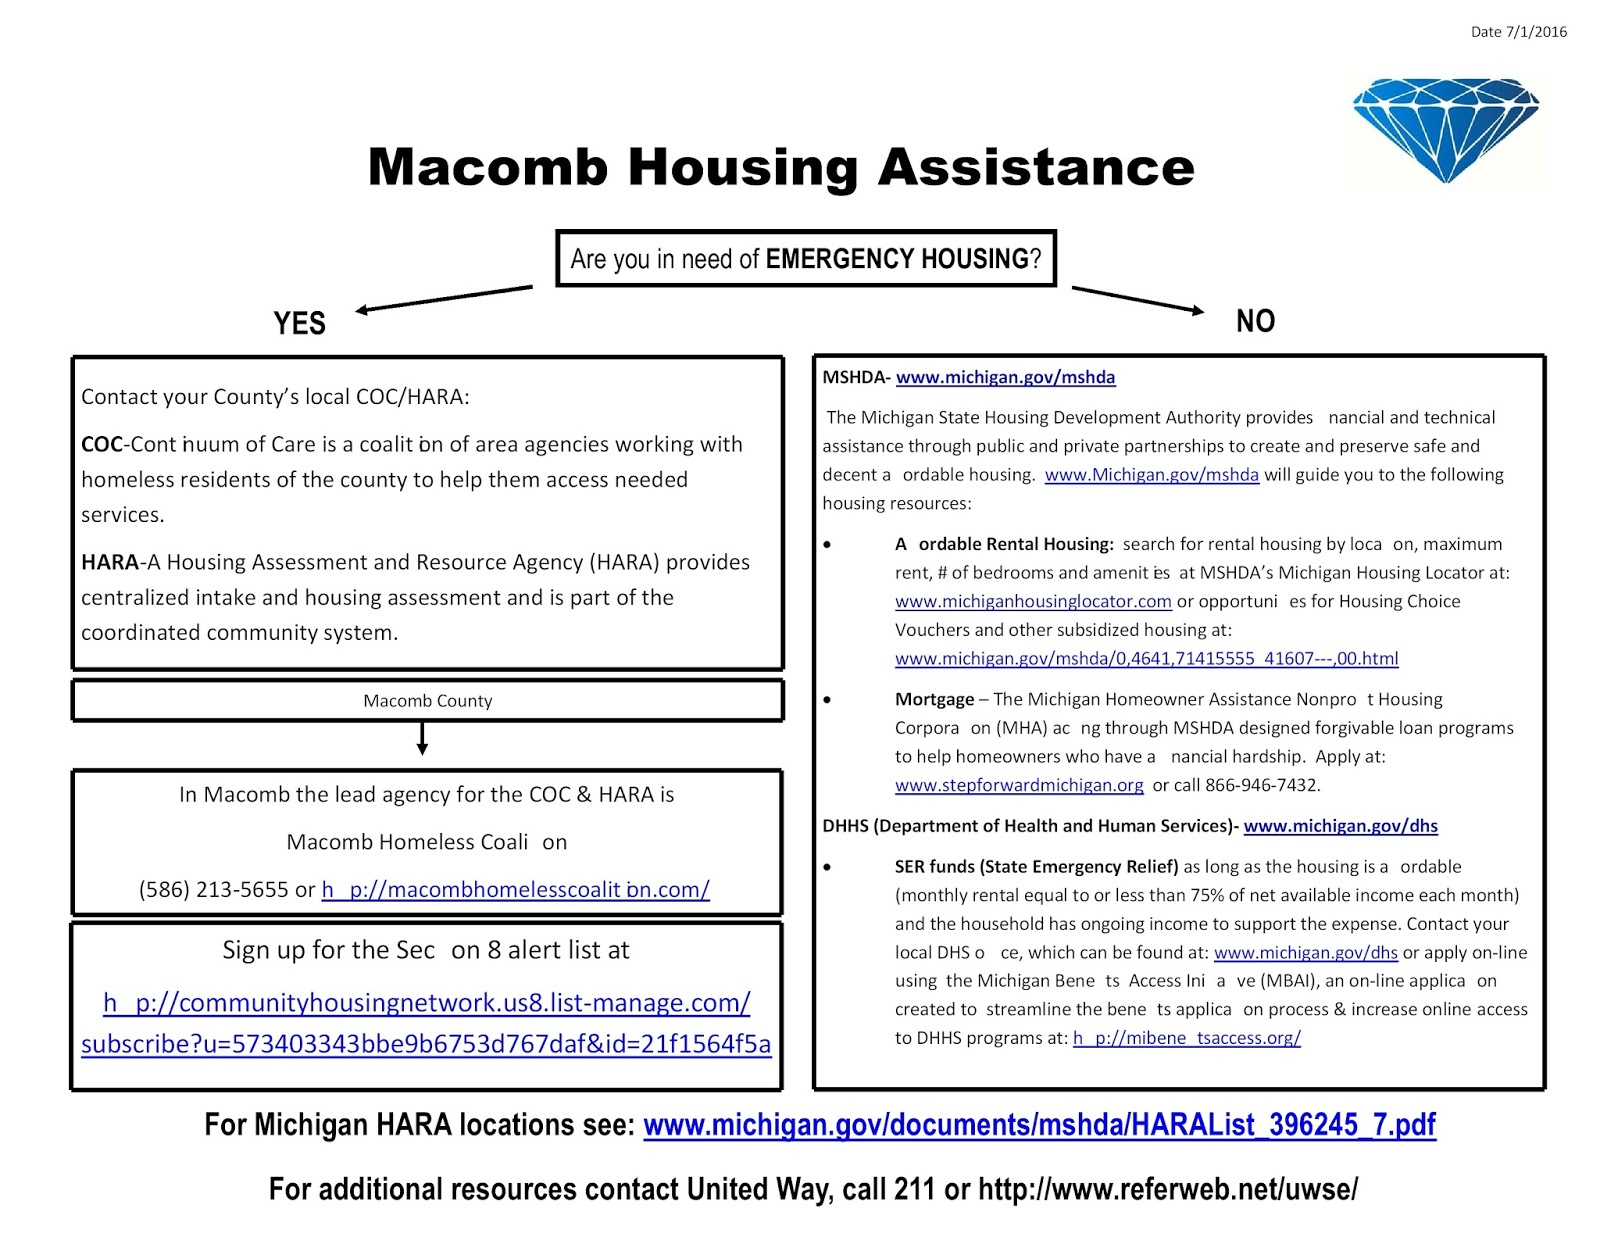 Personal Storehouse Project Macomb County Resources: Housing